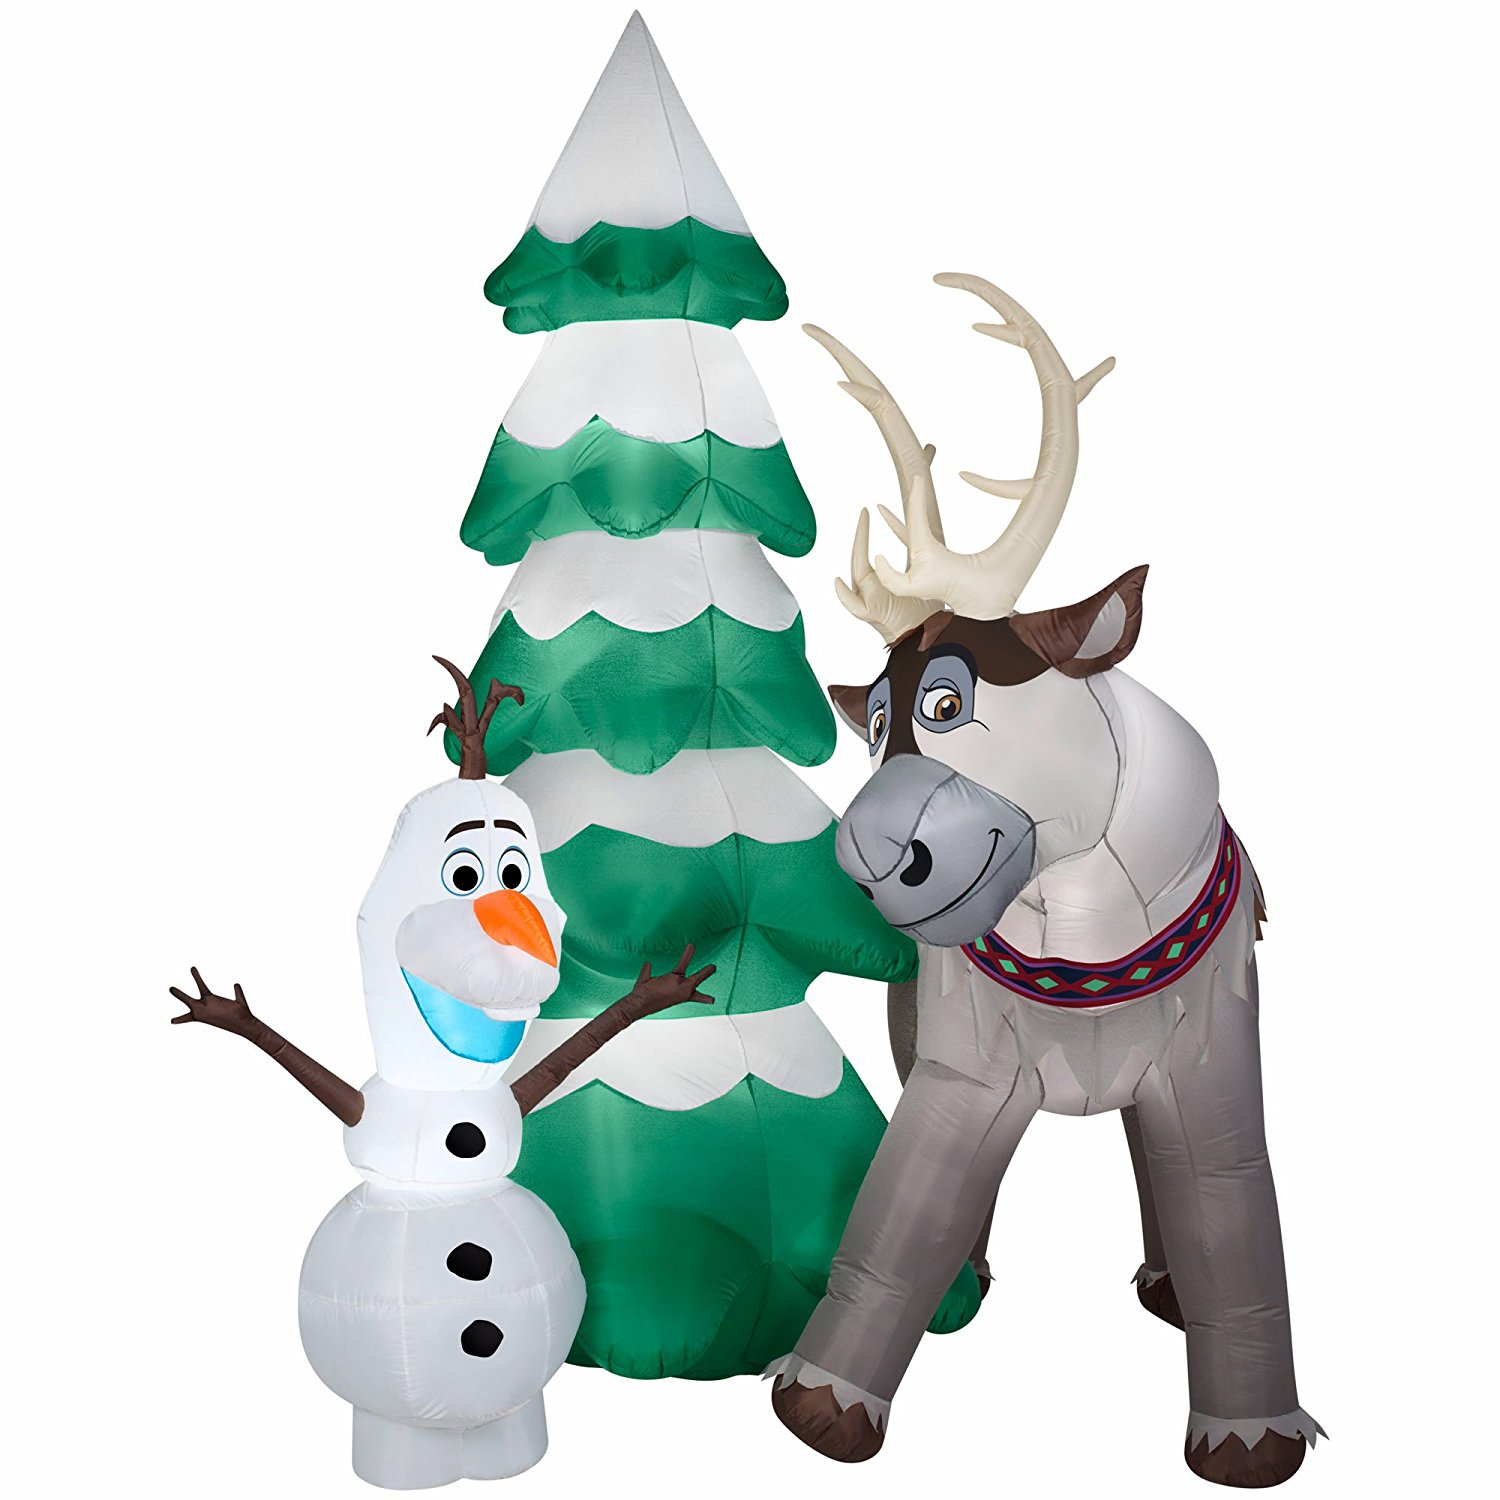 Tall Christmas Tree Cartoon.Cheap Gemmy Tree Find Gemmy Tree Deals On Line At Alibaba Com